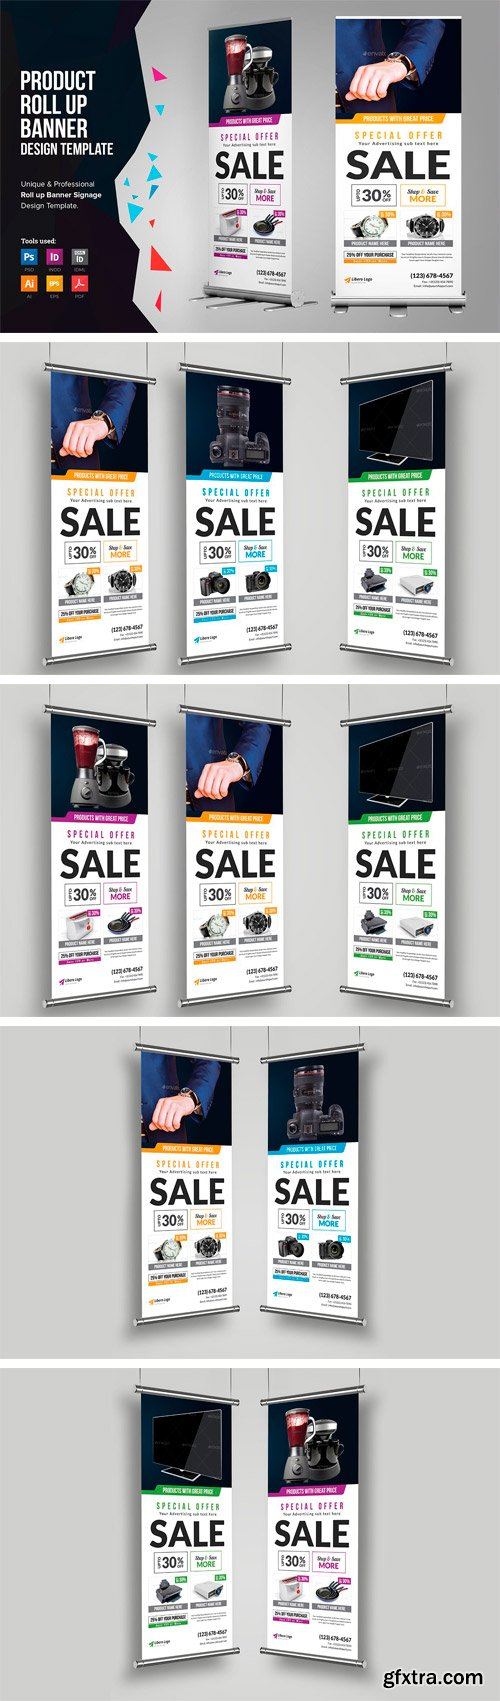 CM - Product Rollup Banner Signage 2511679